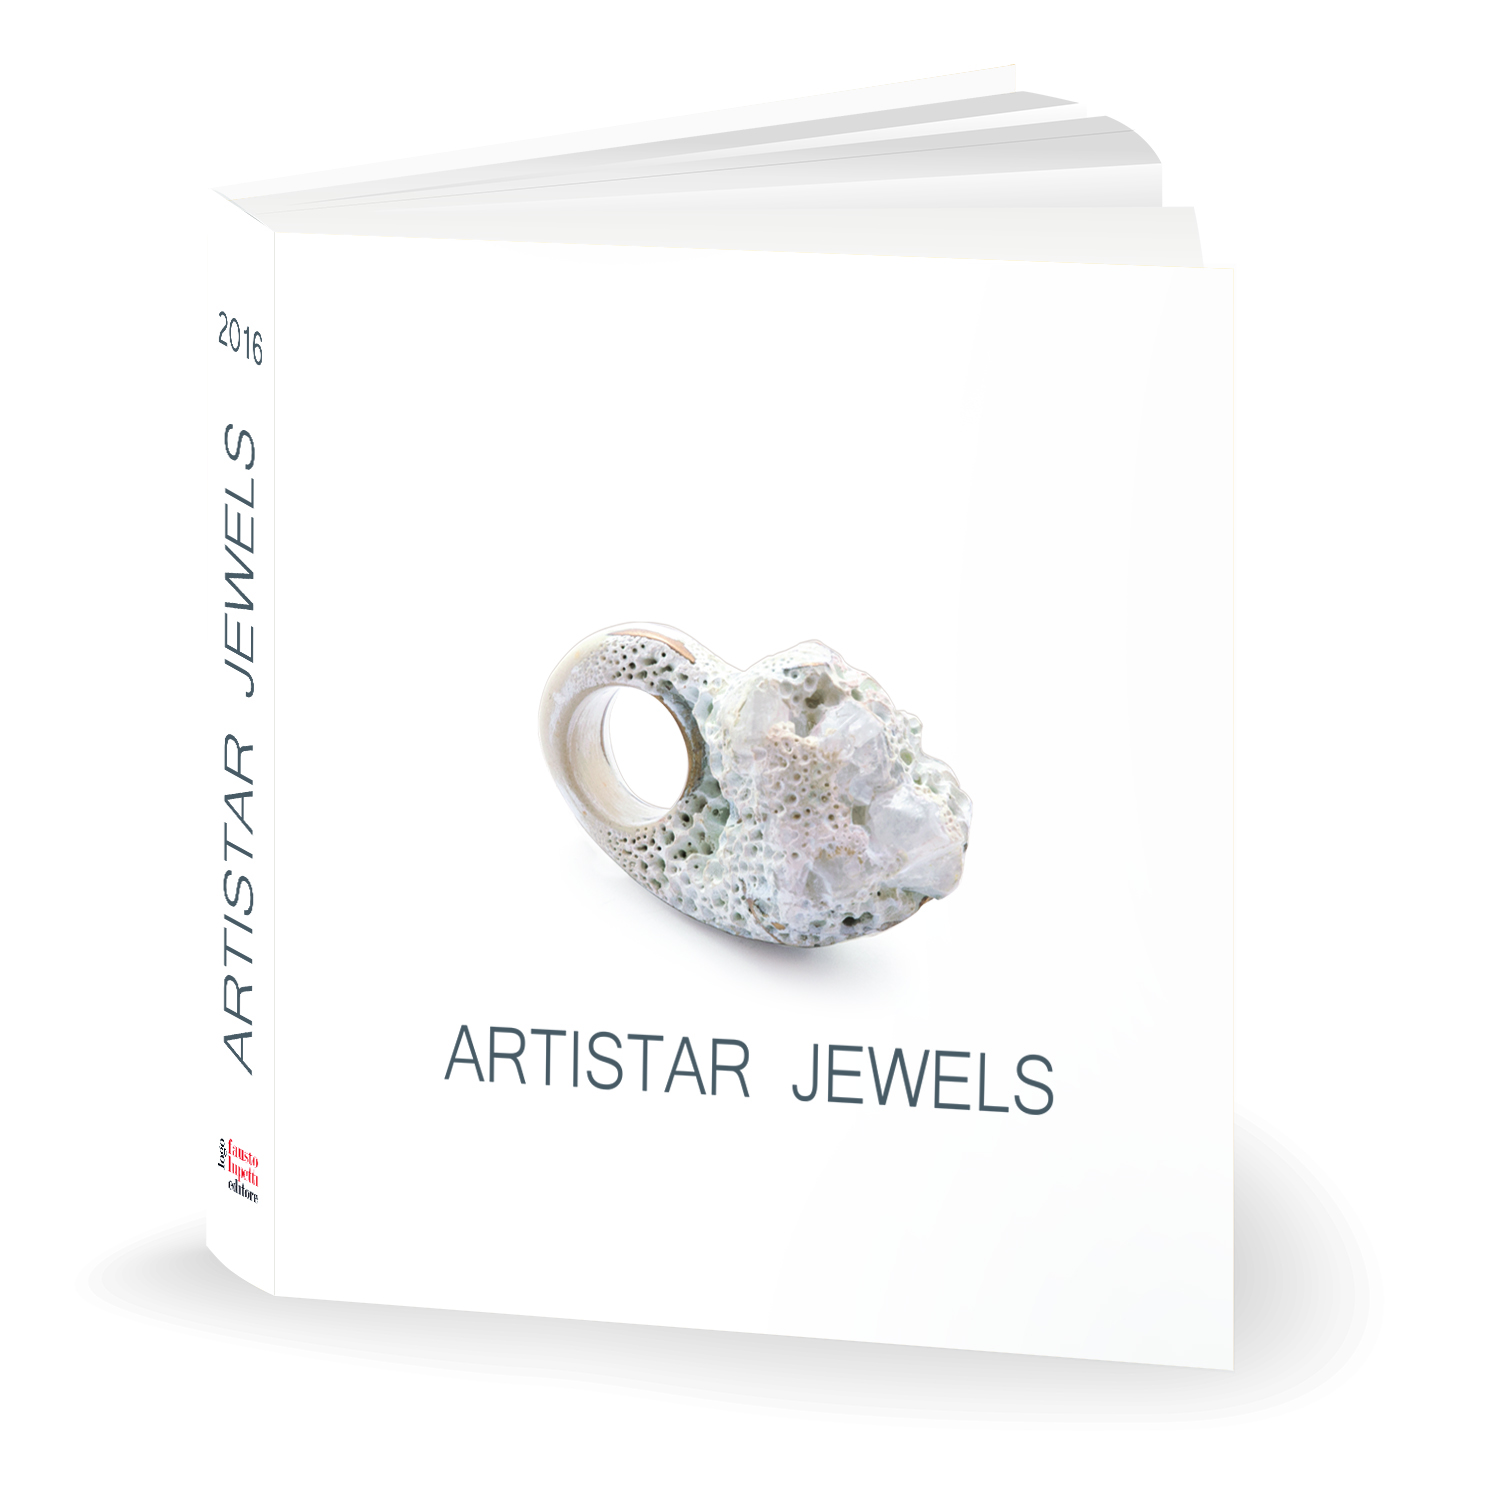 Cover_Artistar Jewels 2016